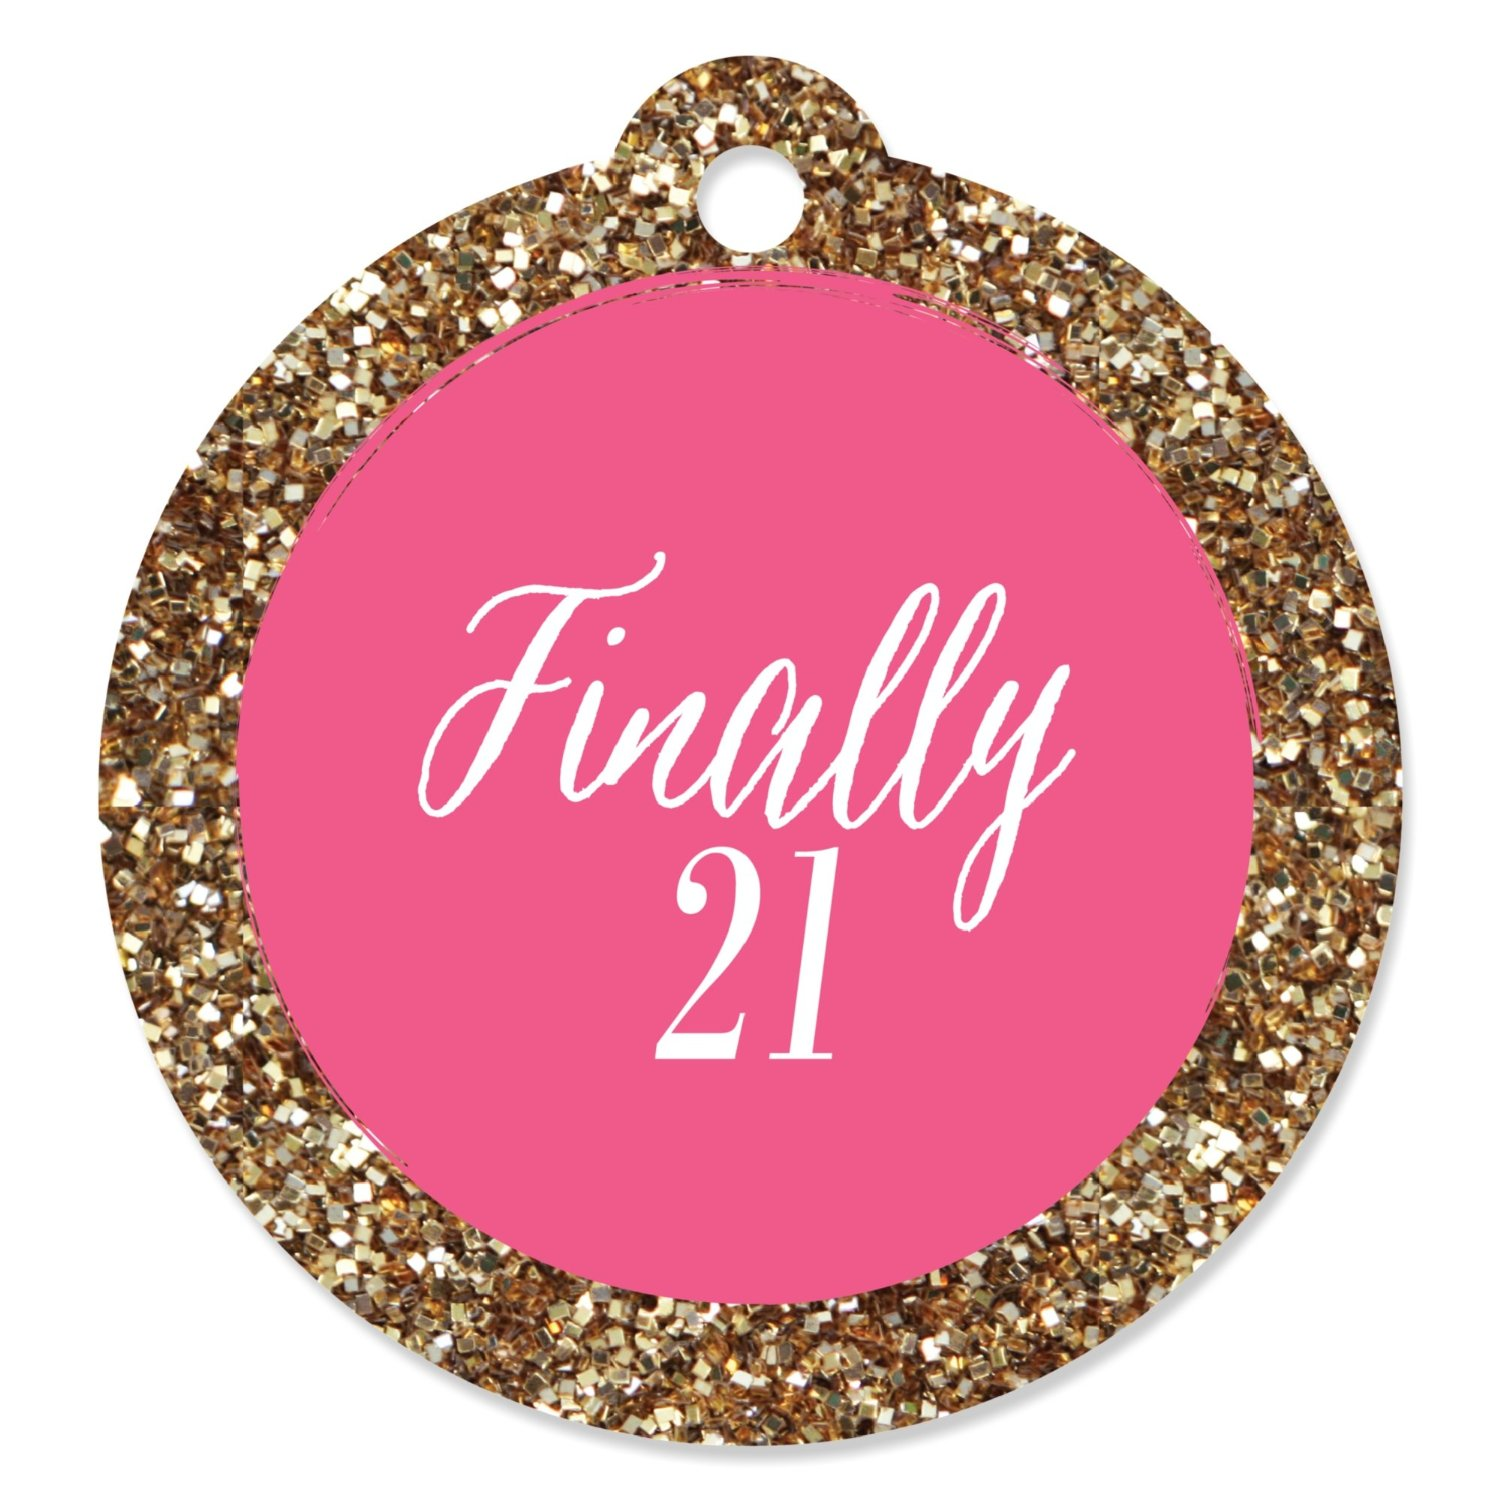 Finally 21 Girl - 21st Birthday - Party Favor Tags (Set of 20)